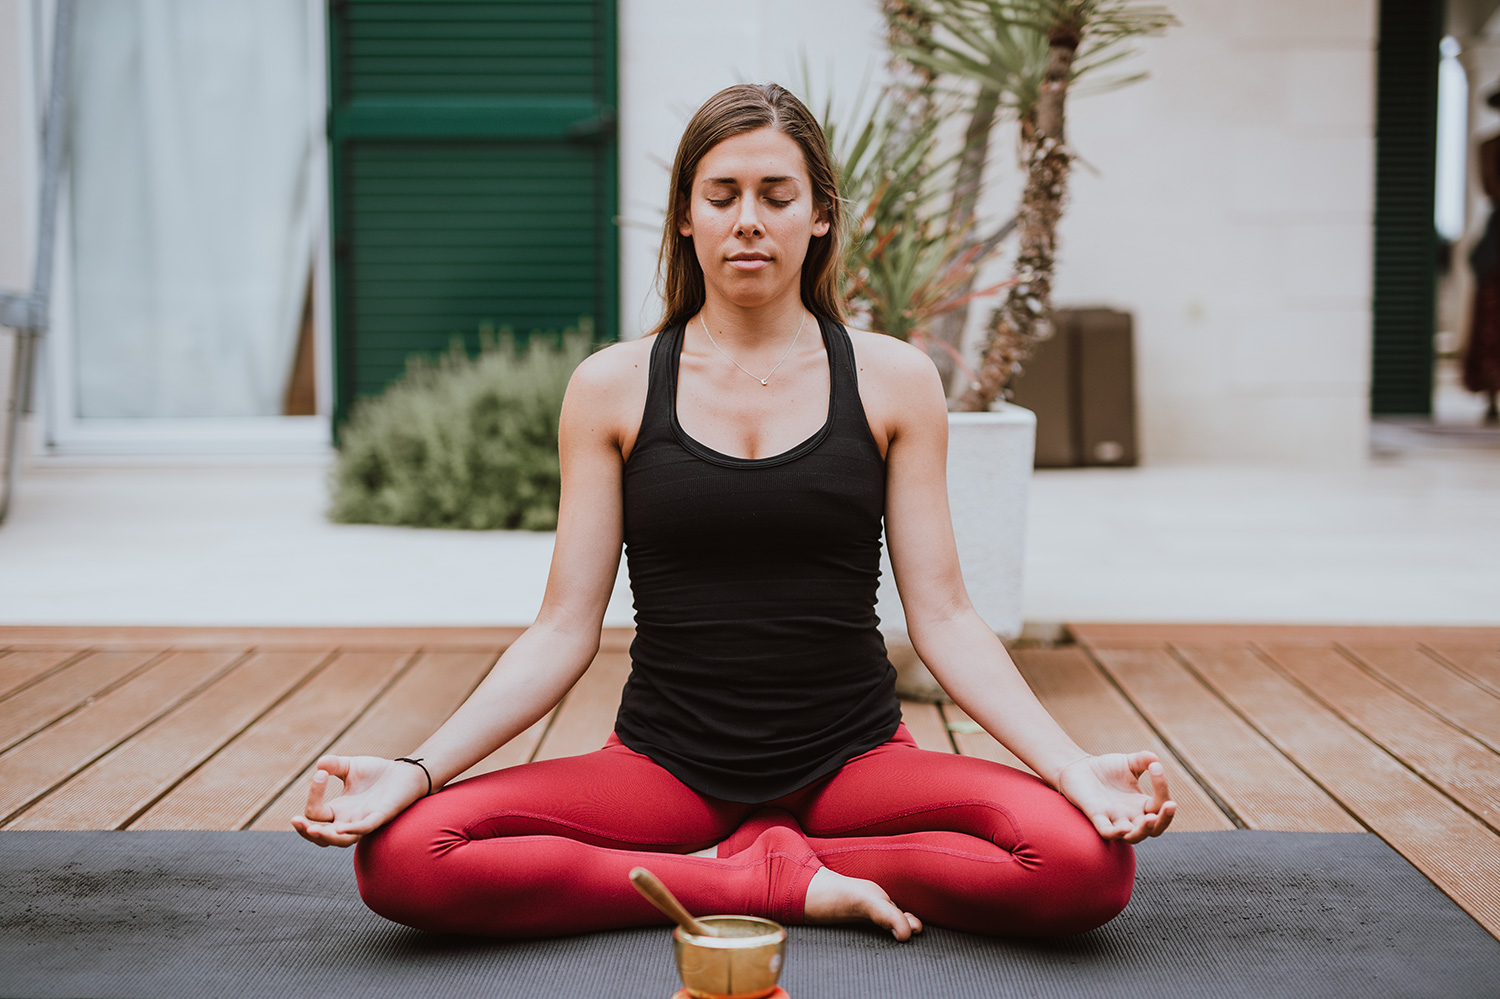 Our teacher Leah: yoga has changed my life in many ways